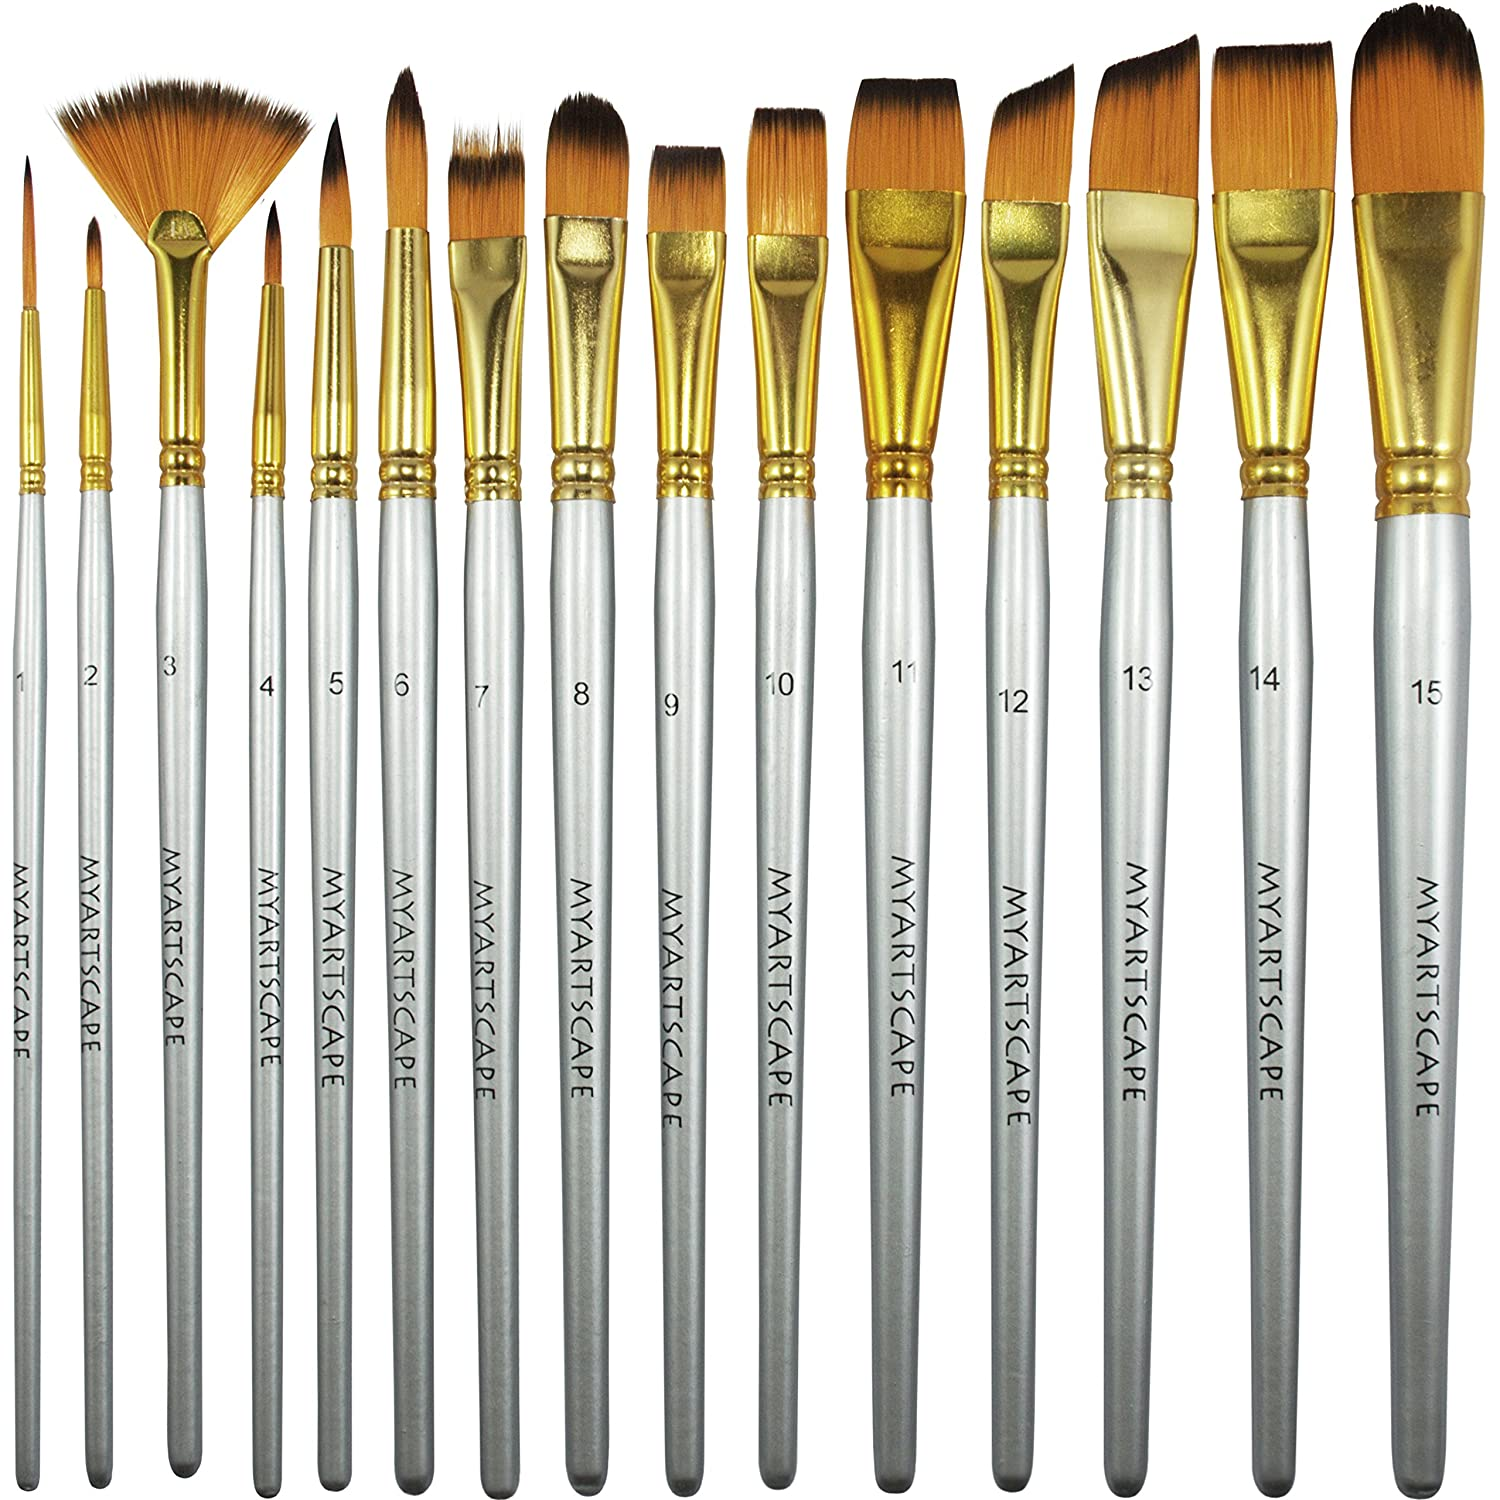 The Paint Brush Kid Questions